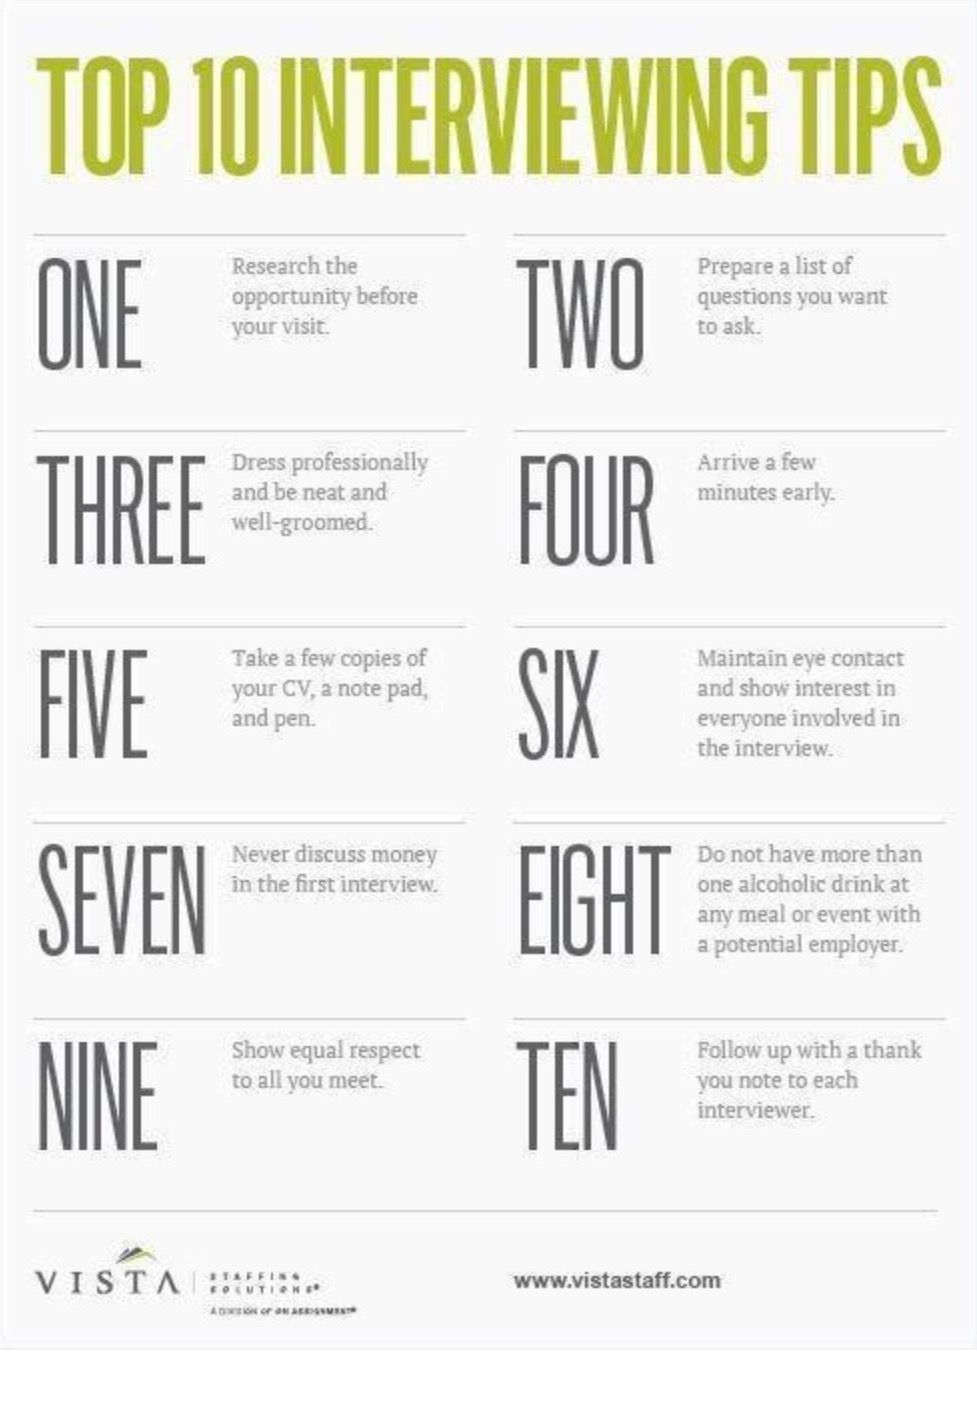 Pin By Sochi Mel On Cute And Office Supplies Job Interview Tips Interview Tips Job Interview Questions